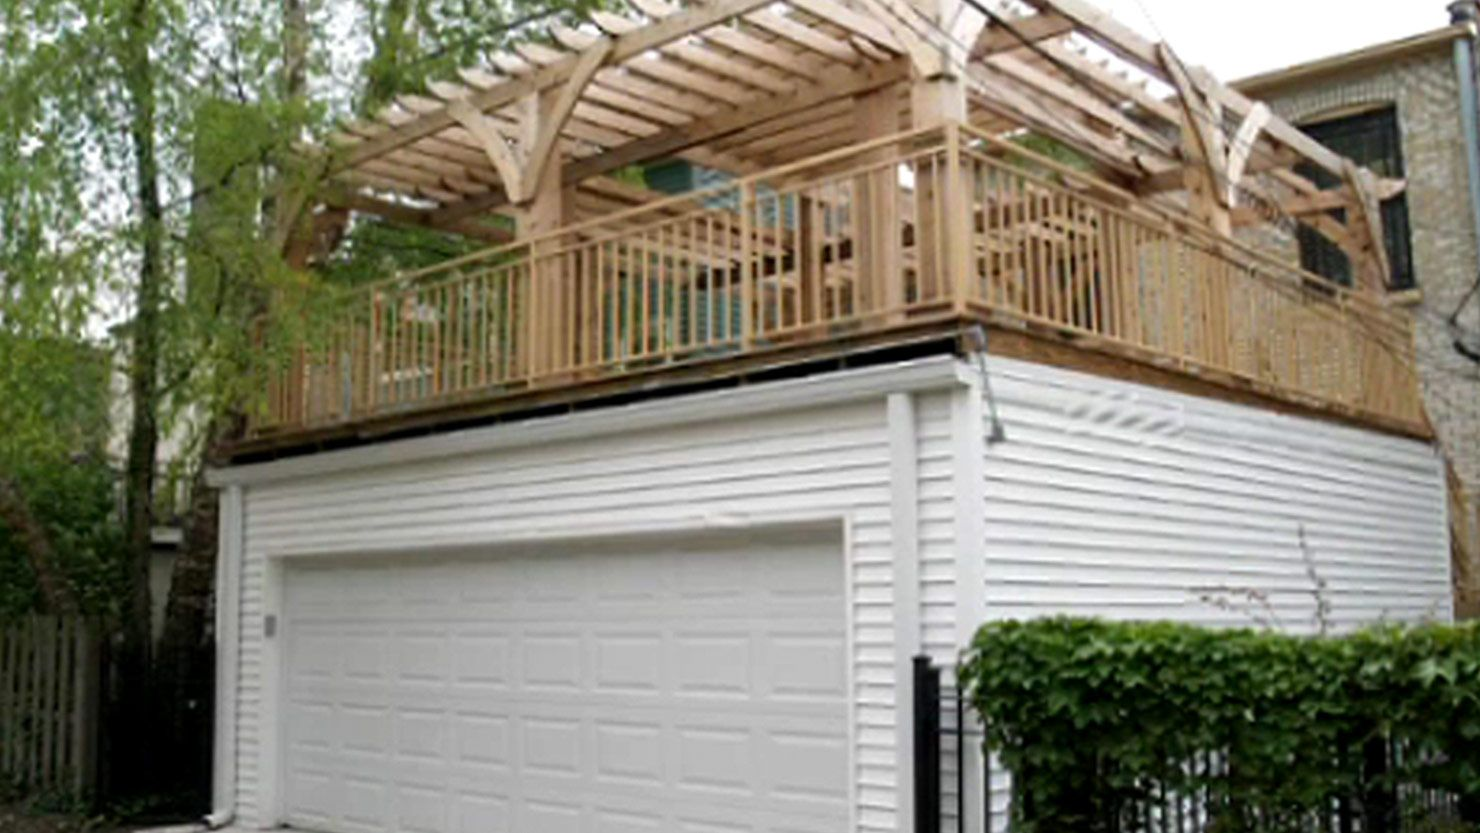 Flat roof garage 2 story garage pinterest flat roof for Garage deck